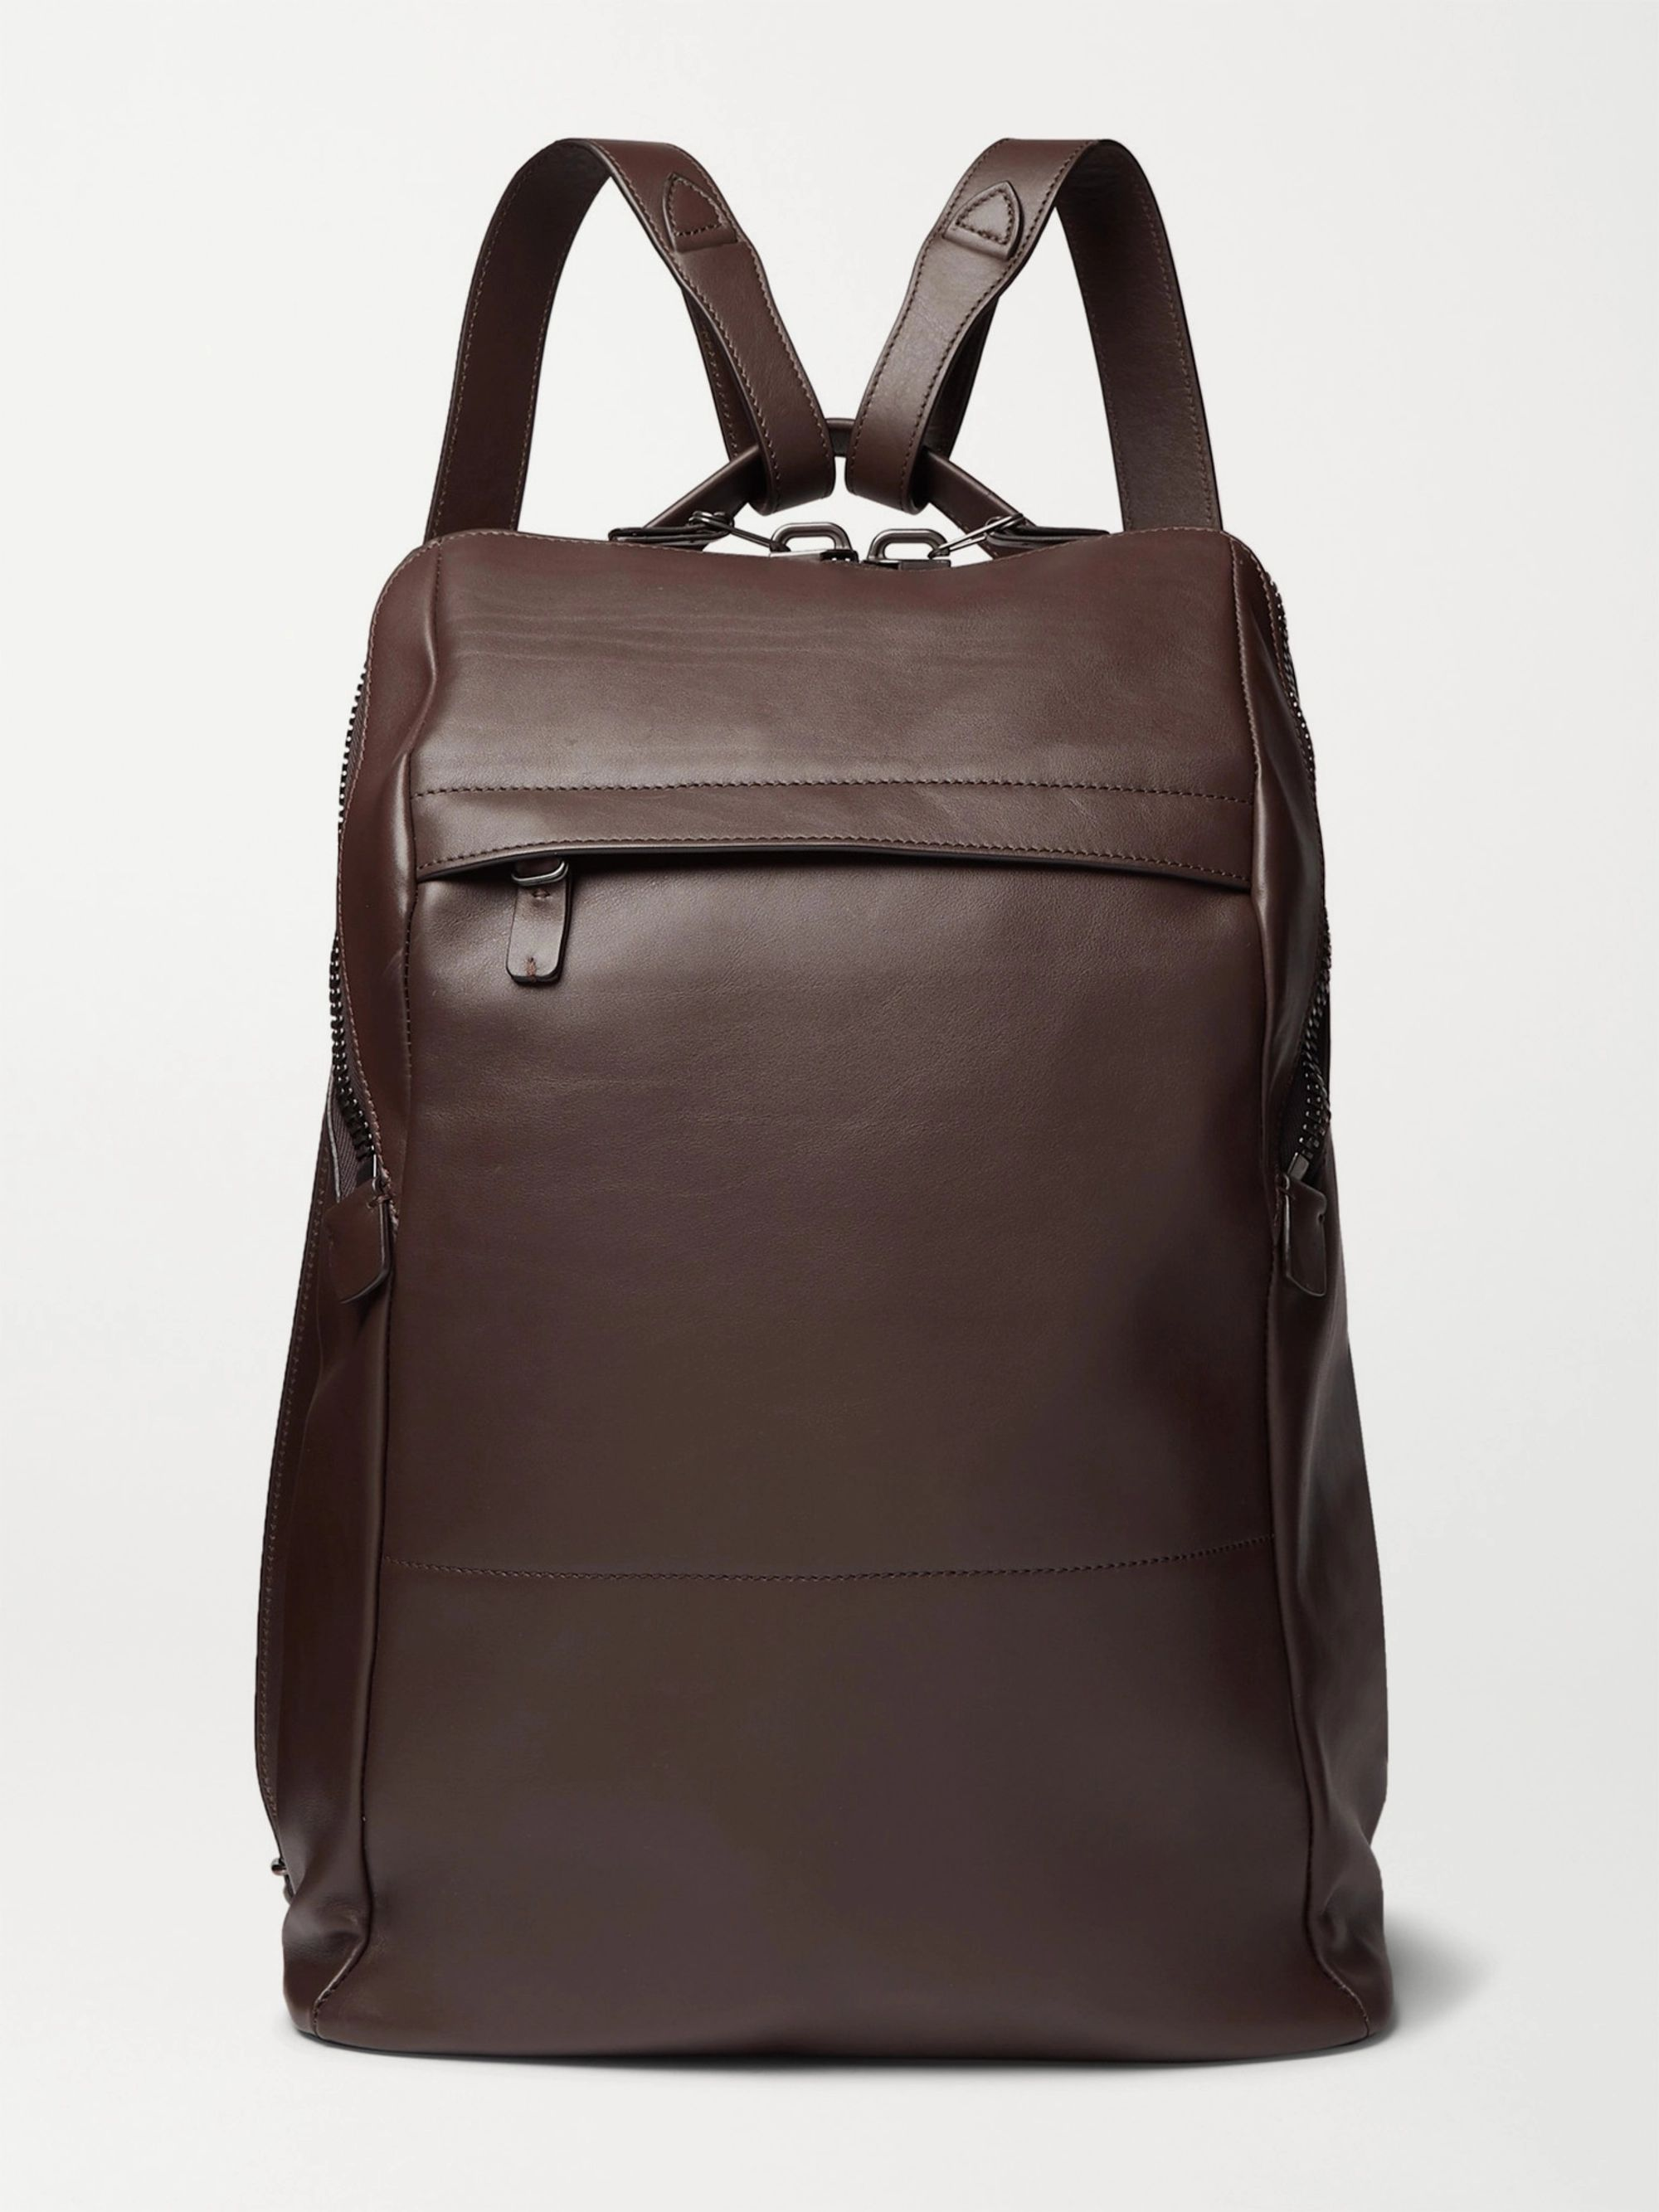 Álvaro Agape Leather Backpack